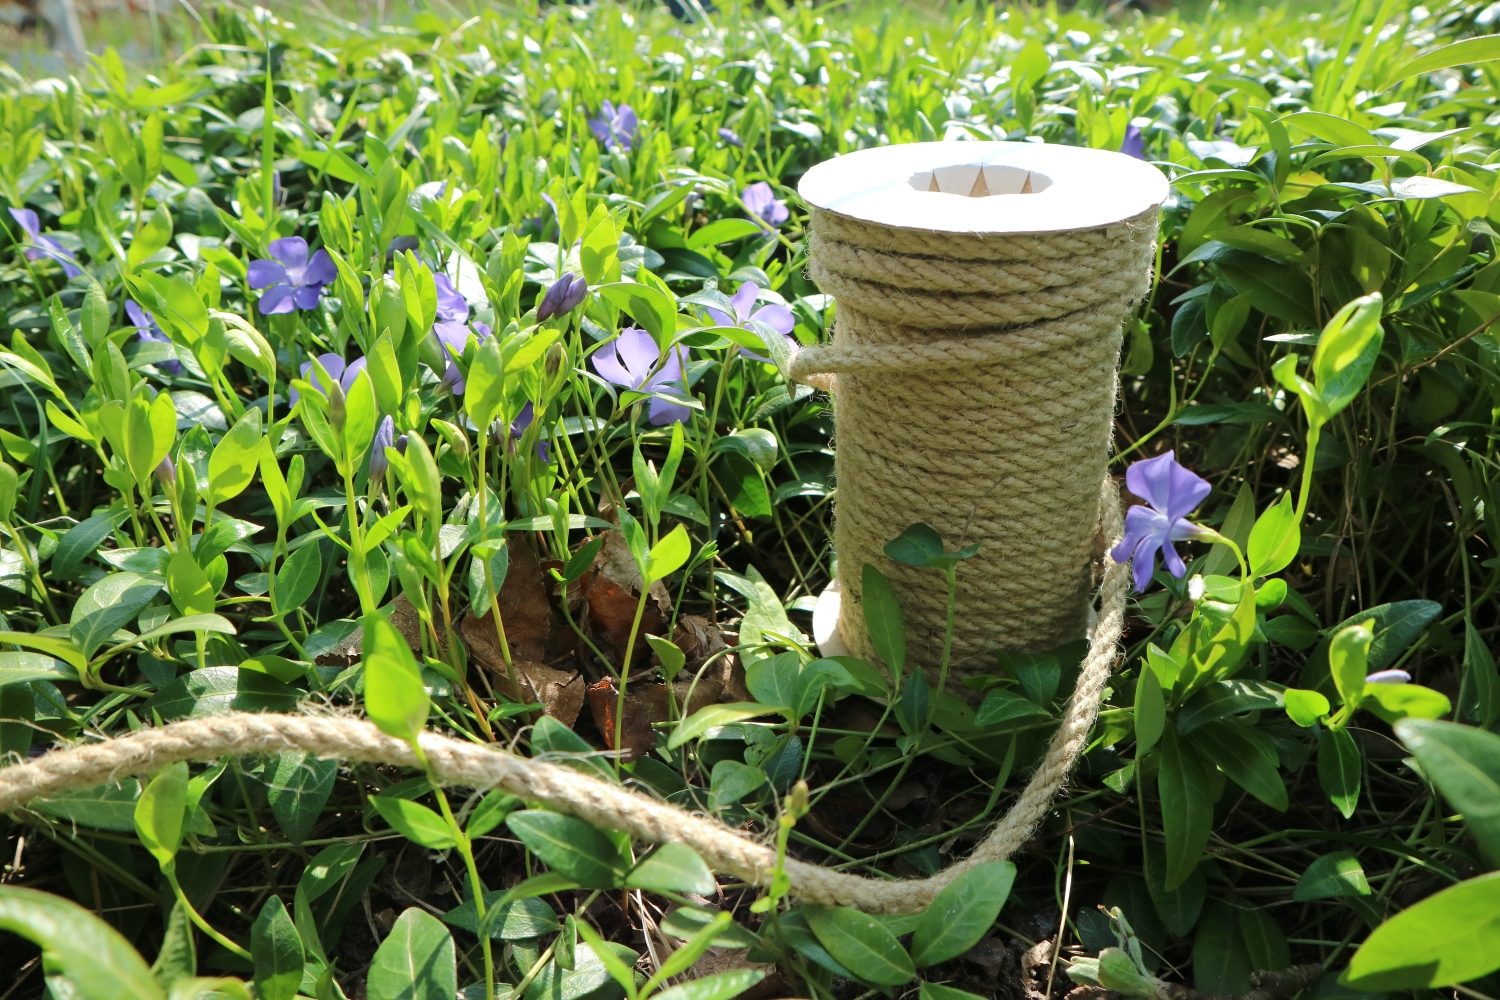 Jute rope Ø 6mm, 25 meters - 2